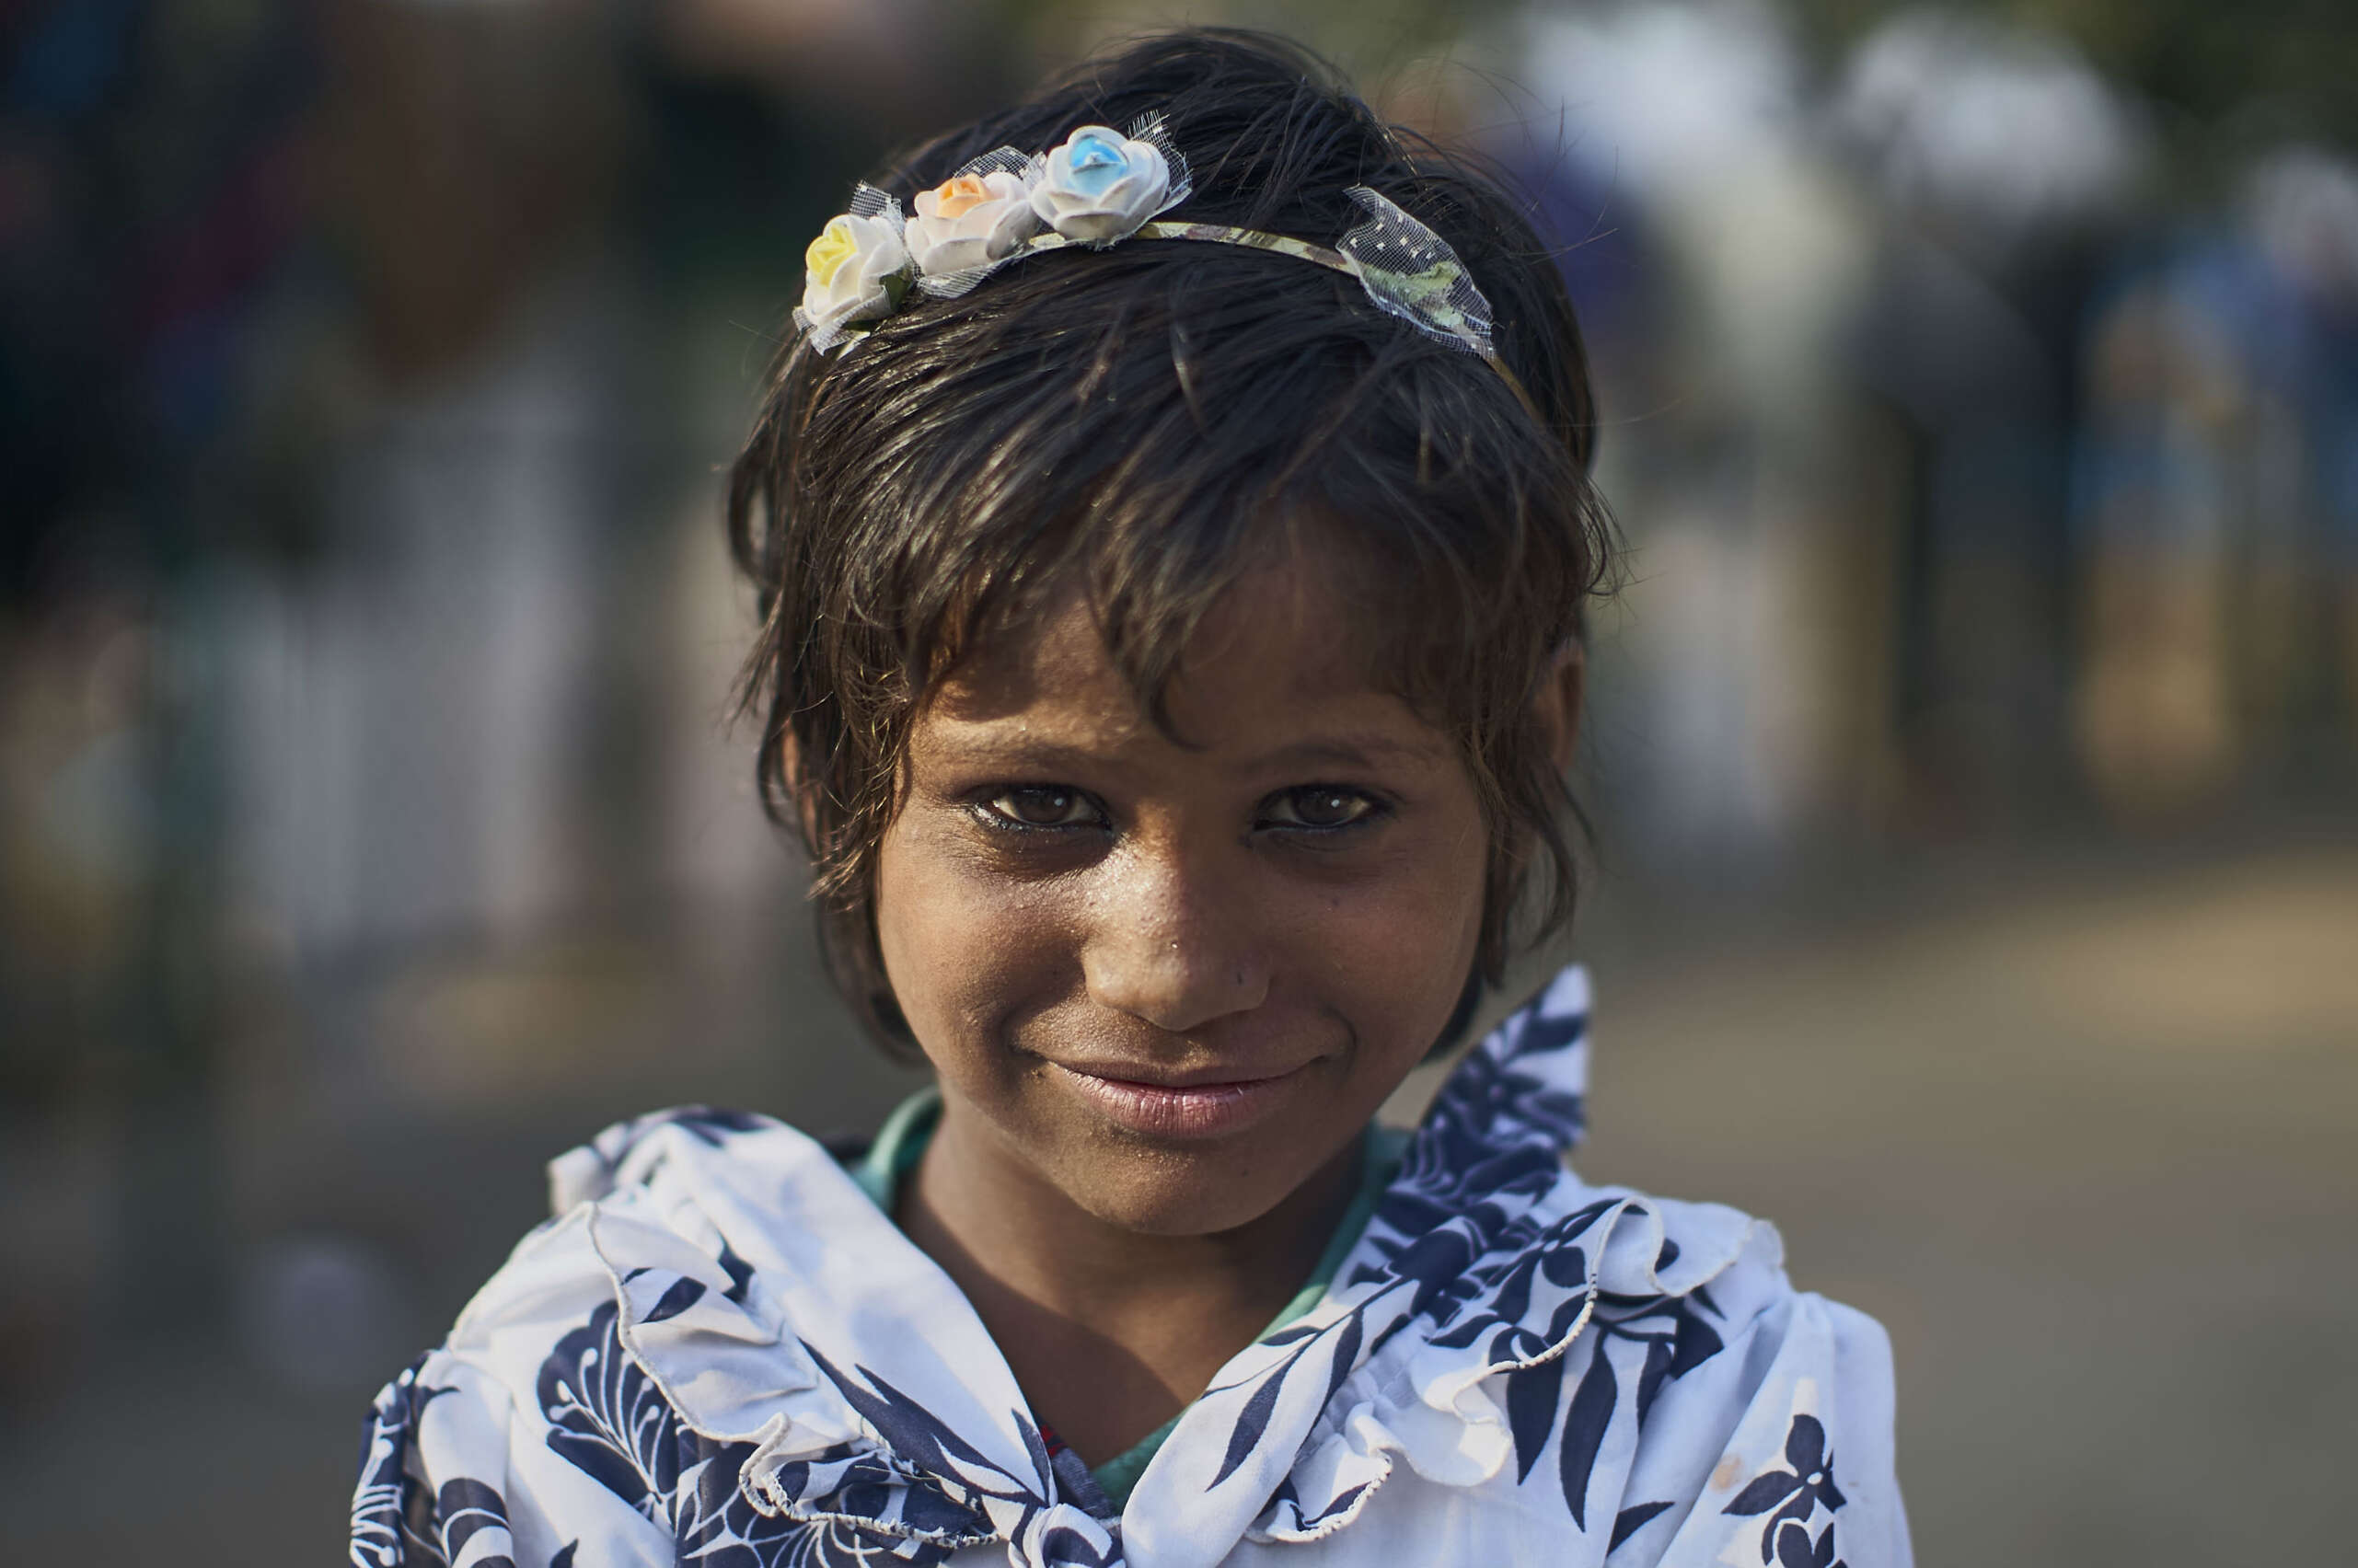 Meera,  one of 6 siblings, lives in a large marketplace in Delhi, India with her mother and her two younger sisters.